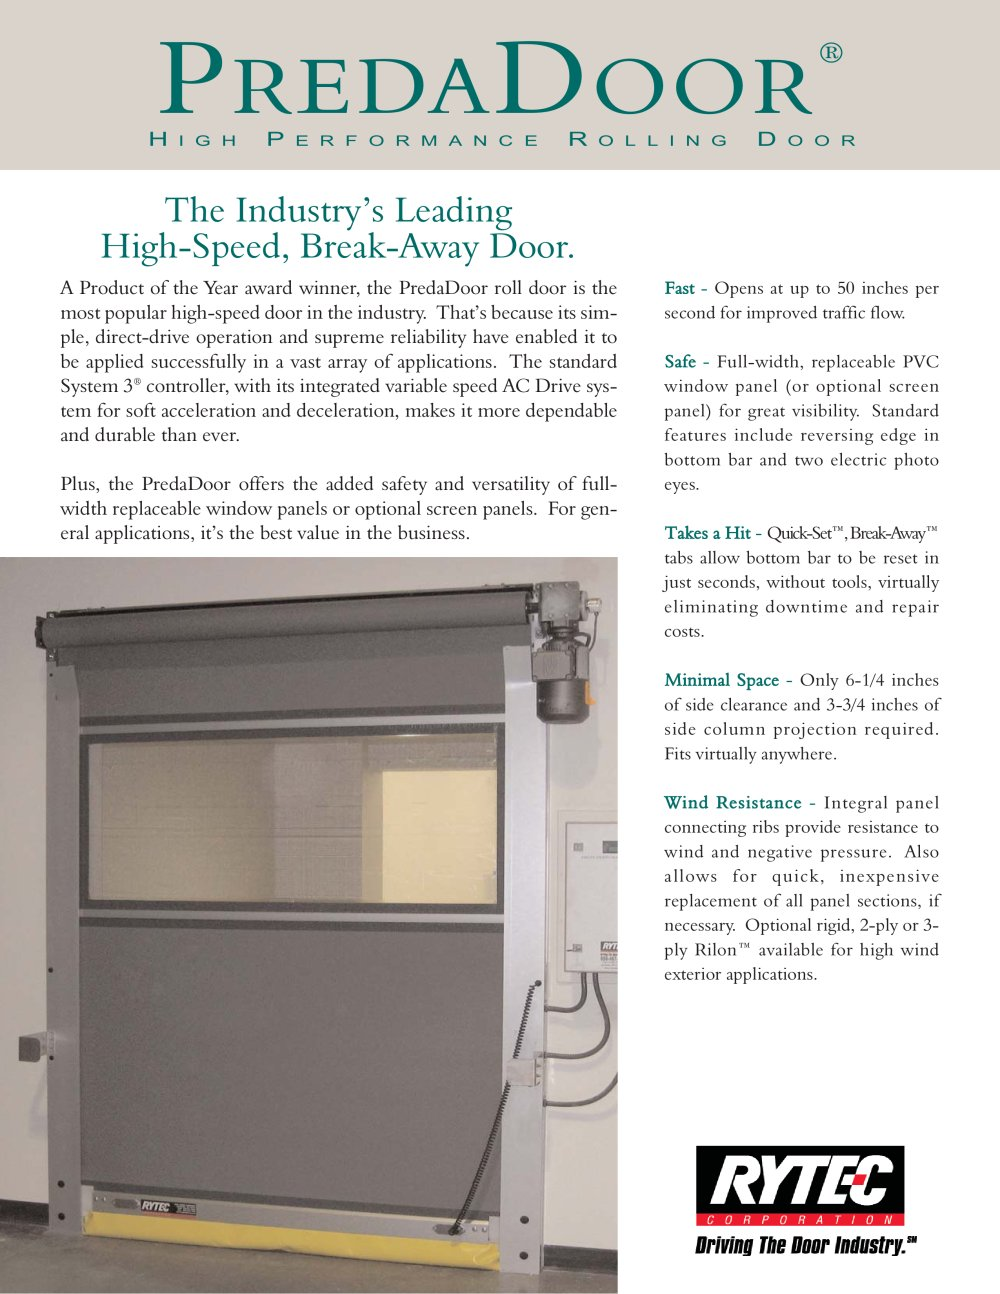 PredaDoor : High Performance Rolling Door   1 / 2 Pages